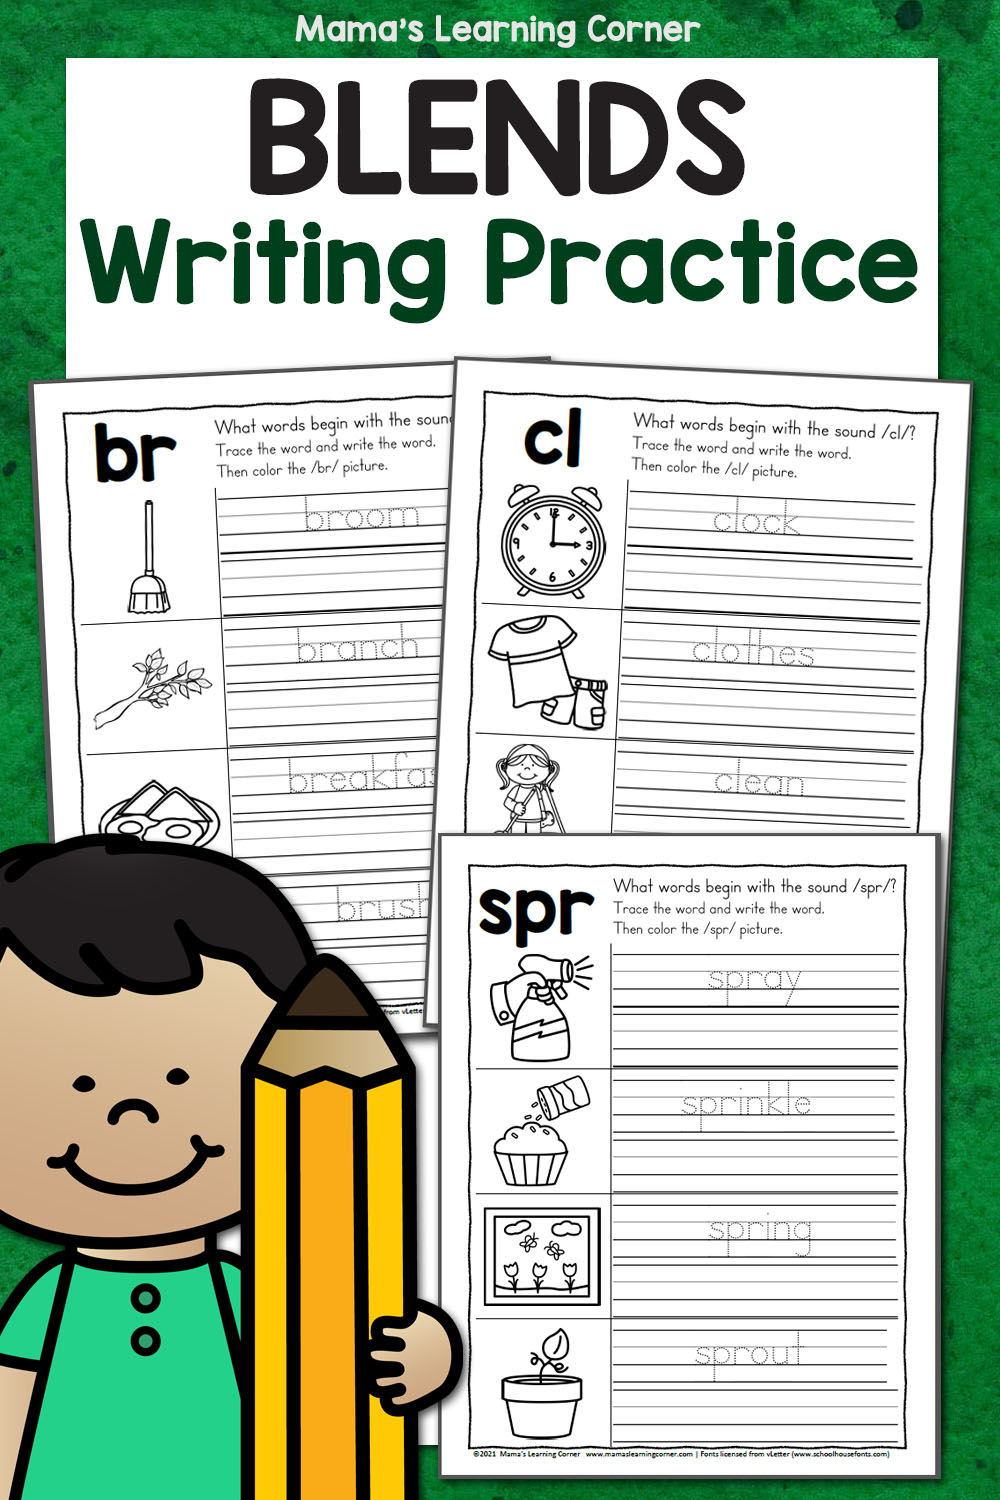 hight resolution of Blends Writing Practice Worksheets - Mamas Learning Corner